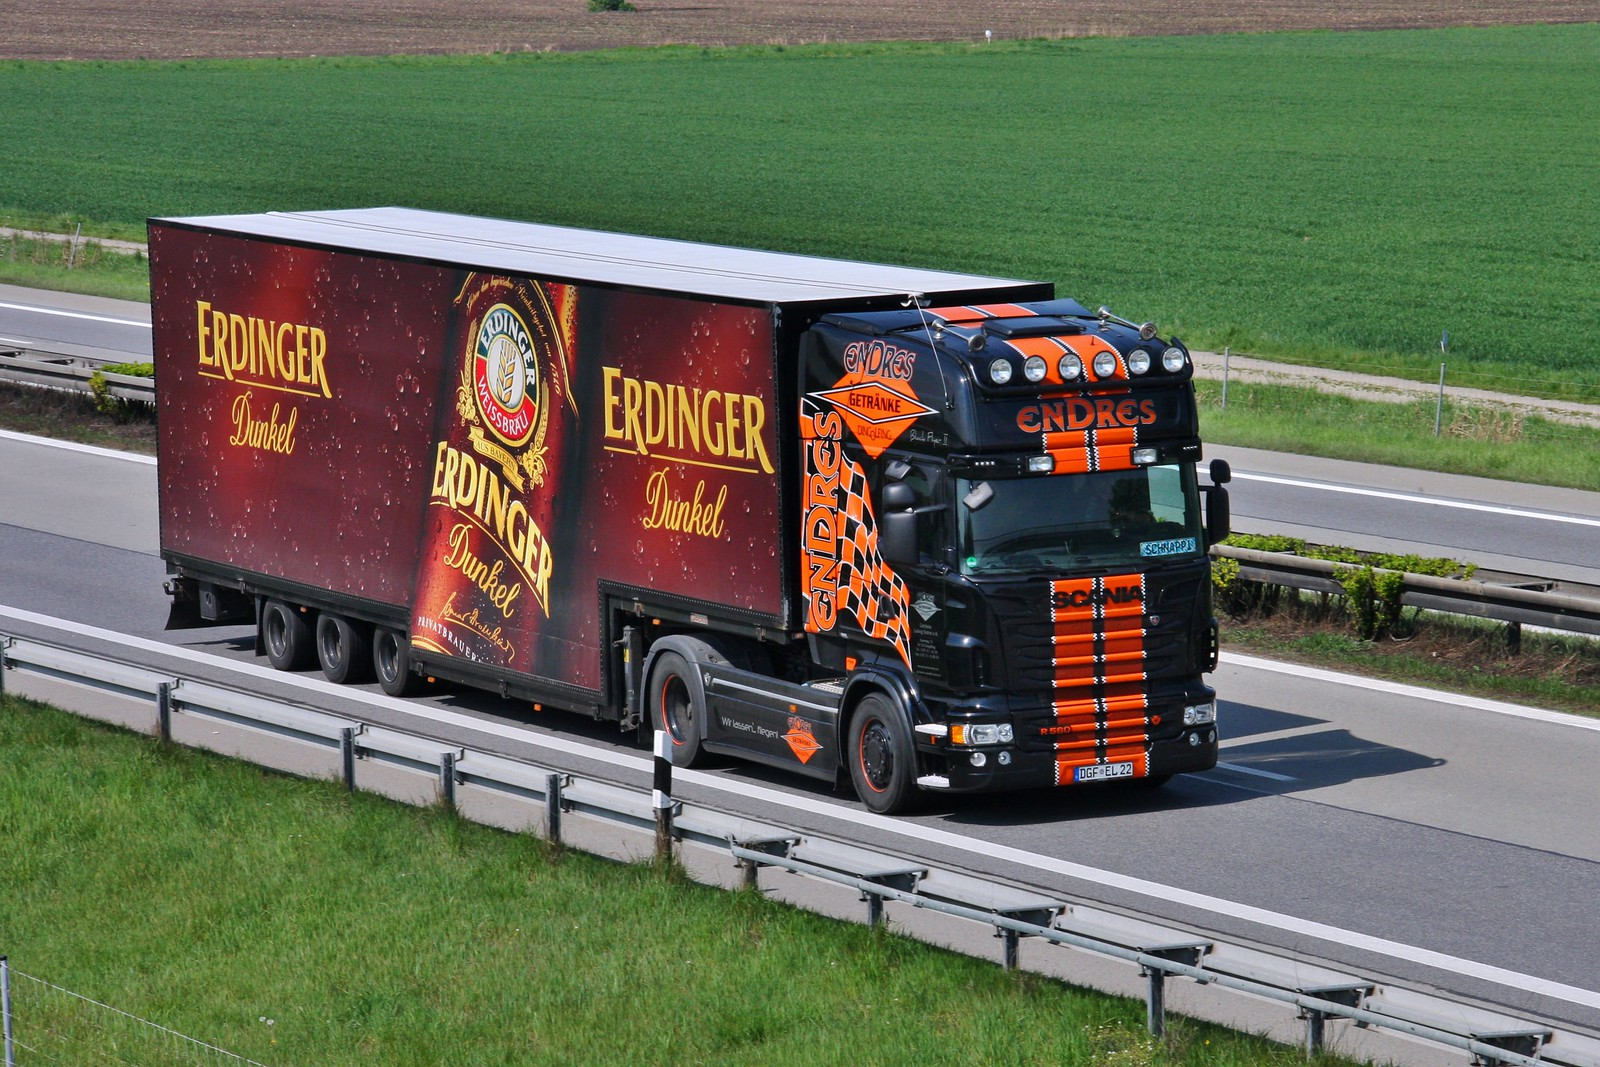 Lkw - Scania | Flickr